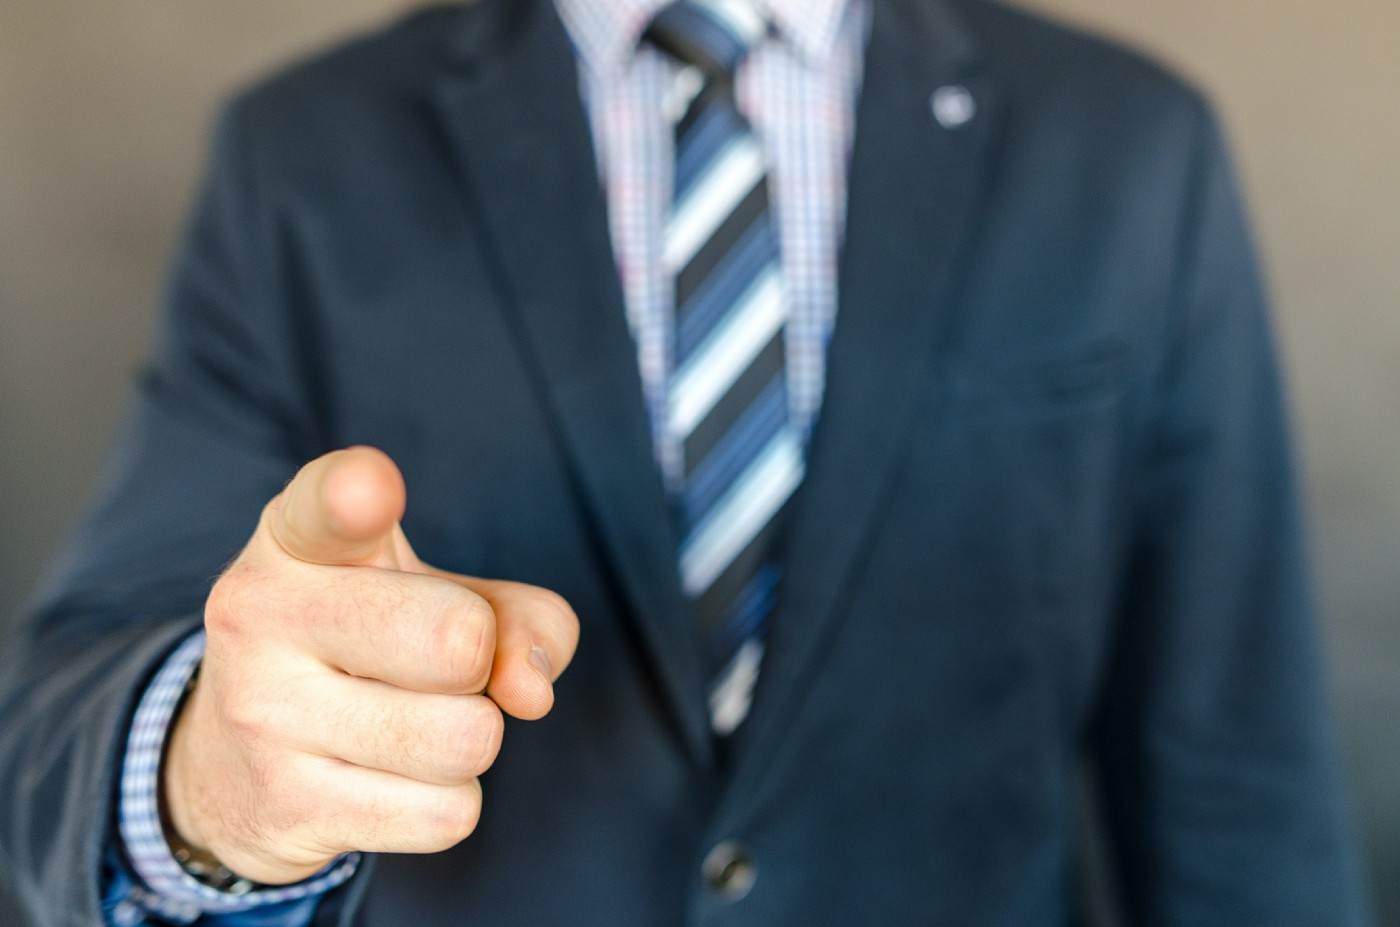 A person with coat and tie pointing his index finger towards the camera